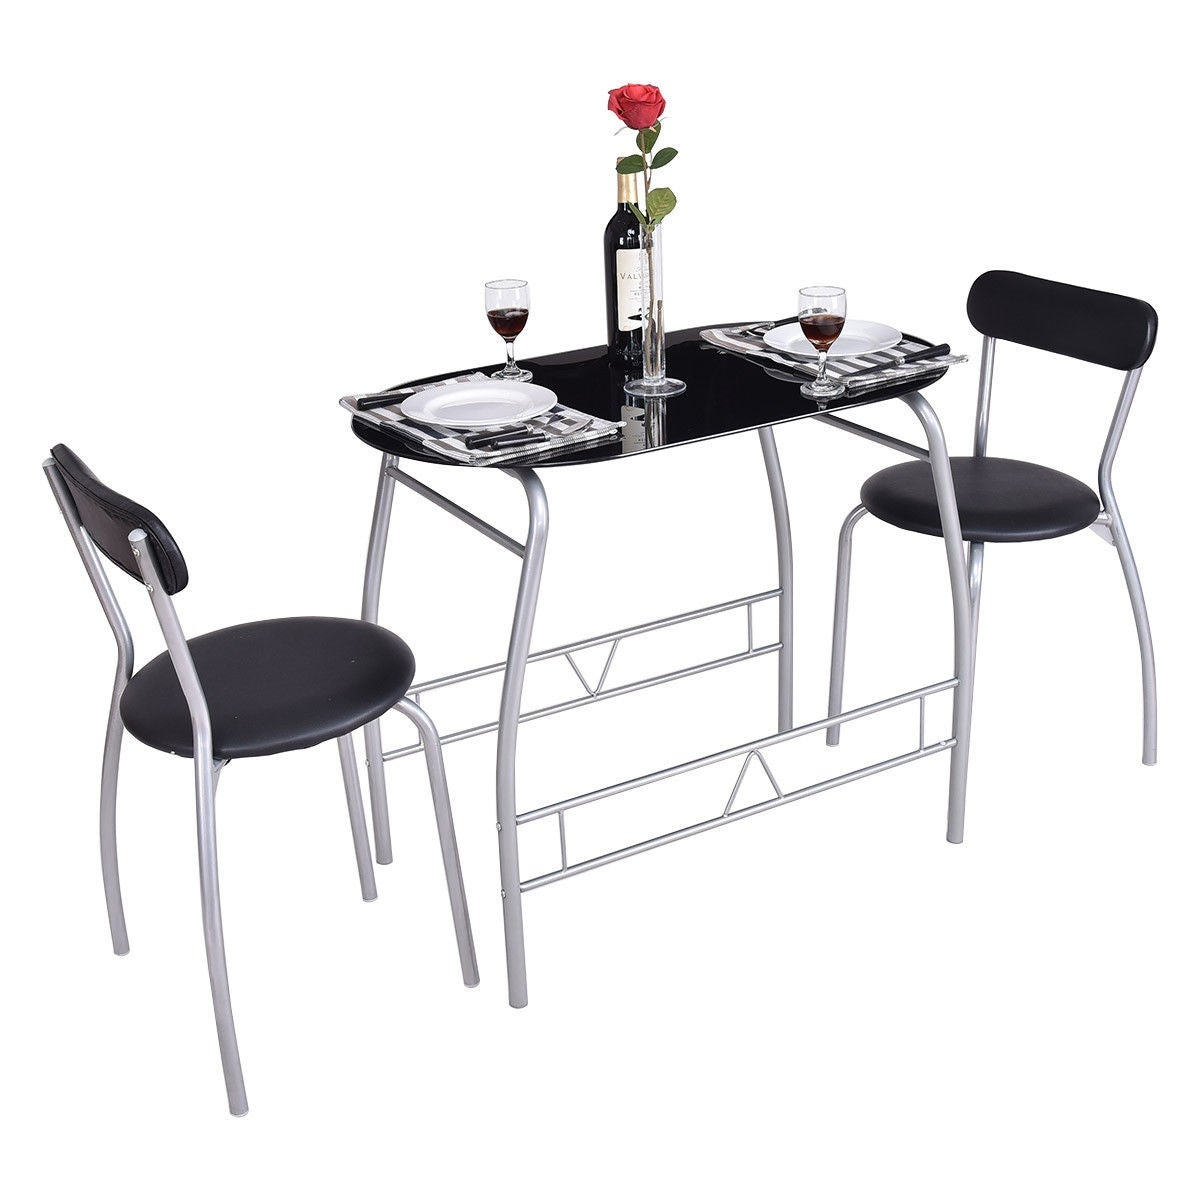 Shop Costway 3 PC Bistro Set Dining Room Breakfast Chairs Tempered ...